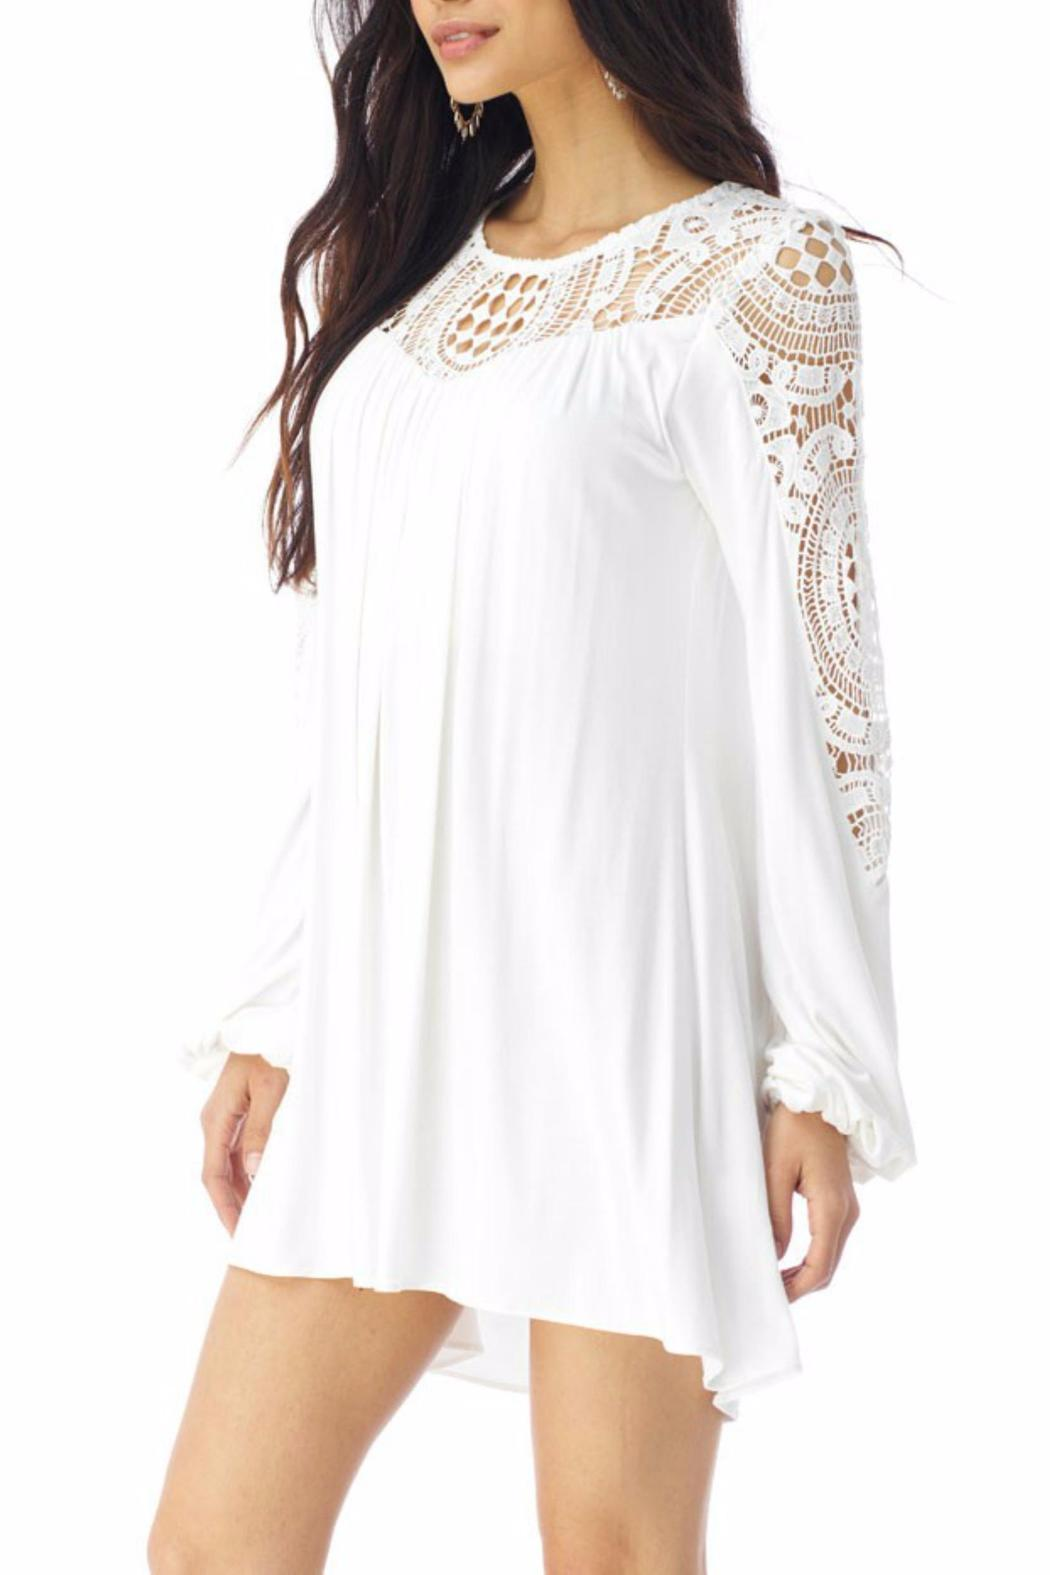 Sky Collection Gridee Mini Dress - Front Full Image